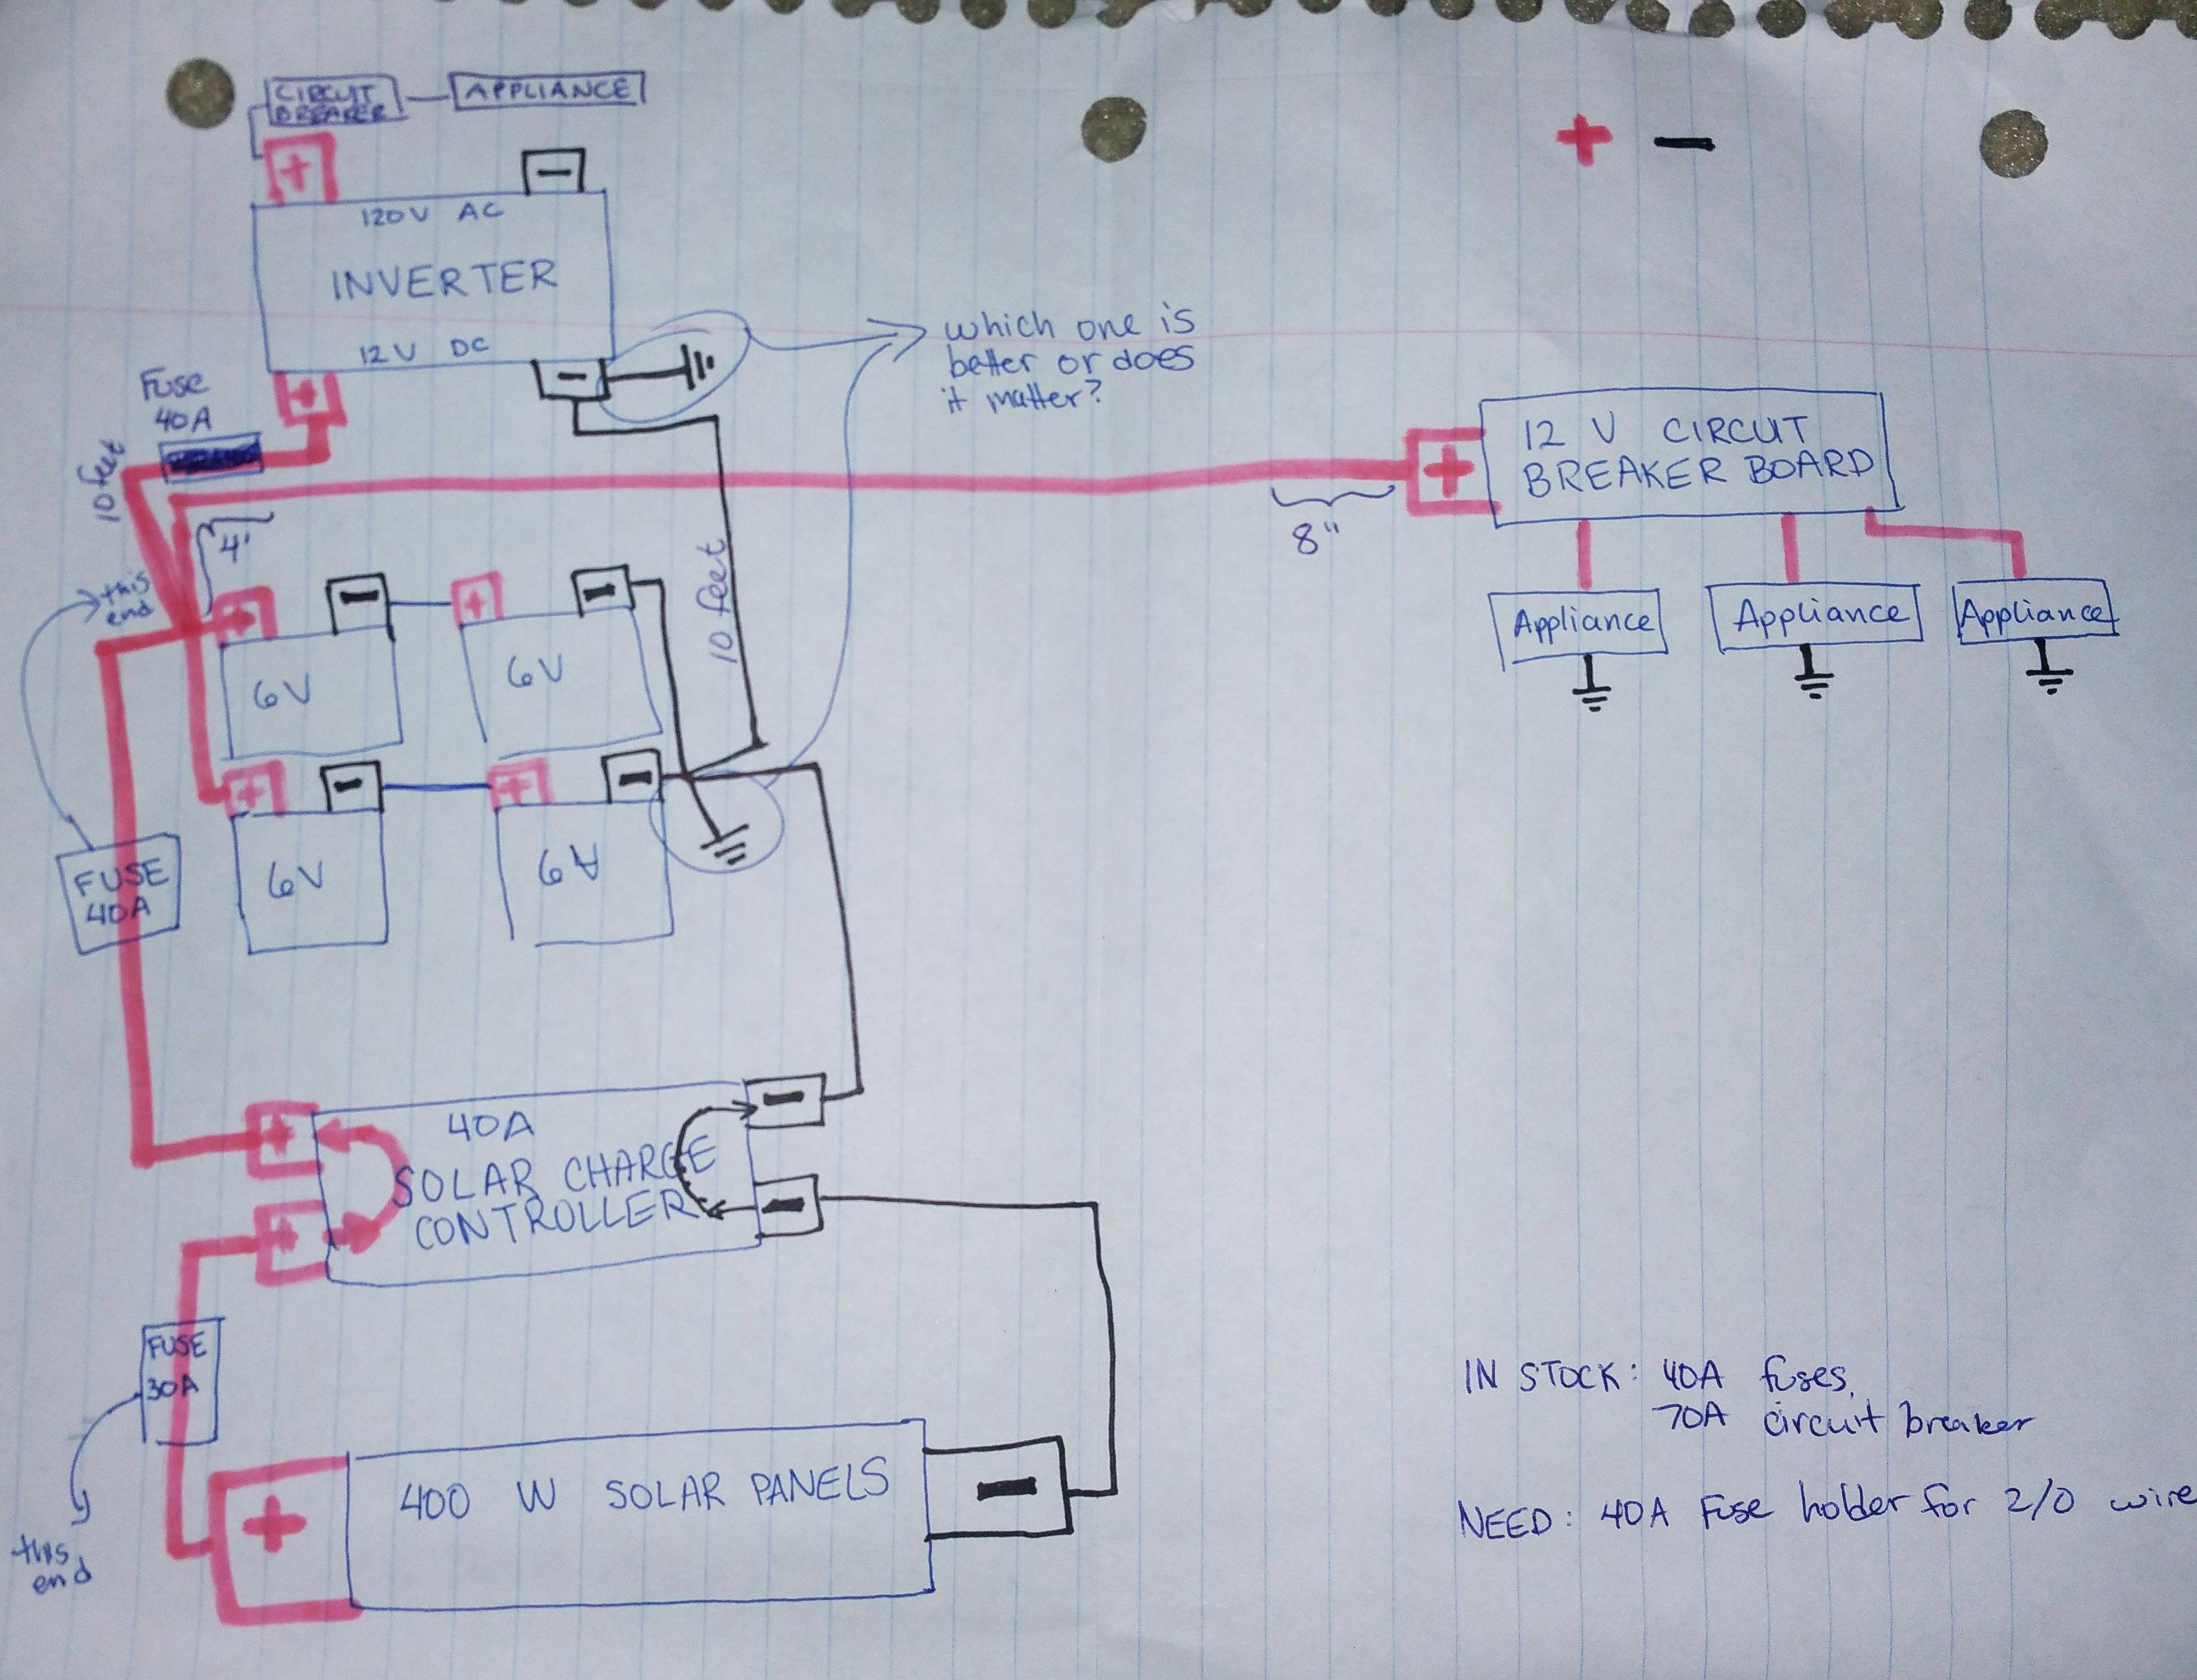 rv battery bank wiring diagram yamaha mio mxi 125 am i supposed to ground the inverter or both enter image description here